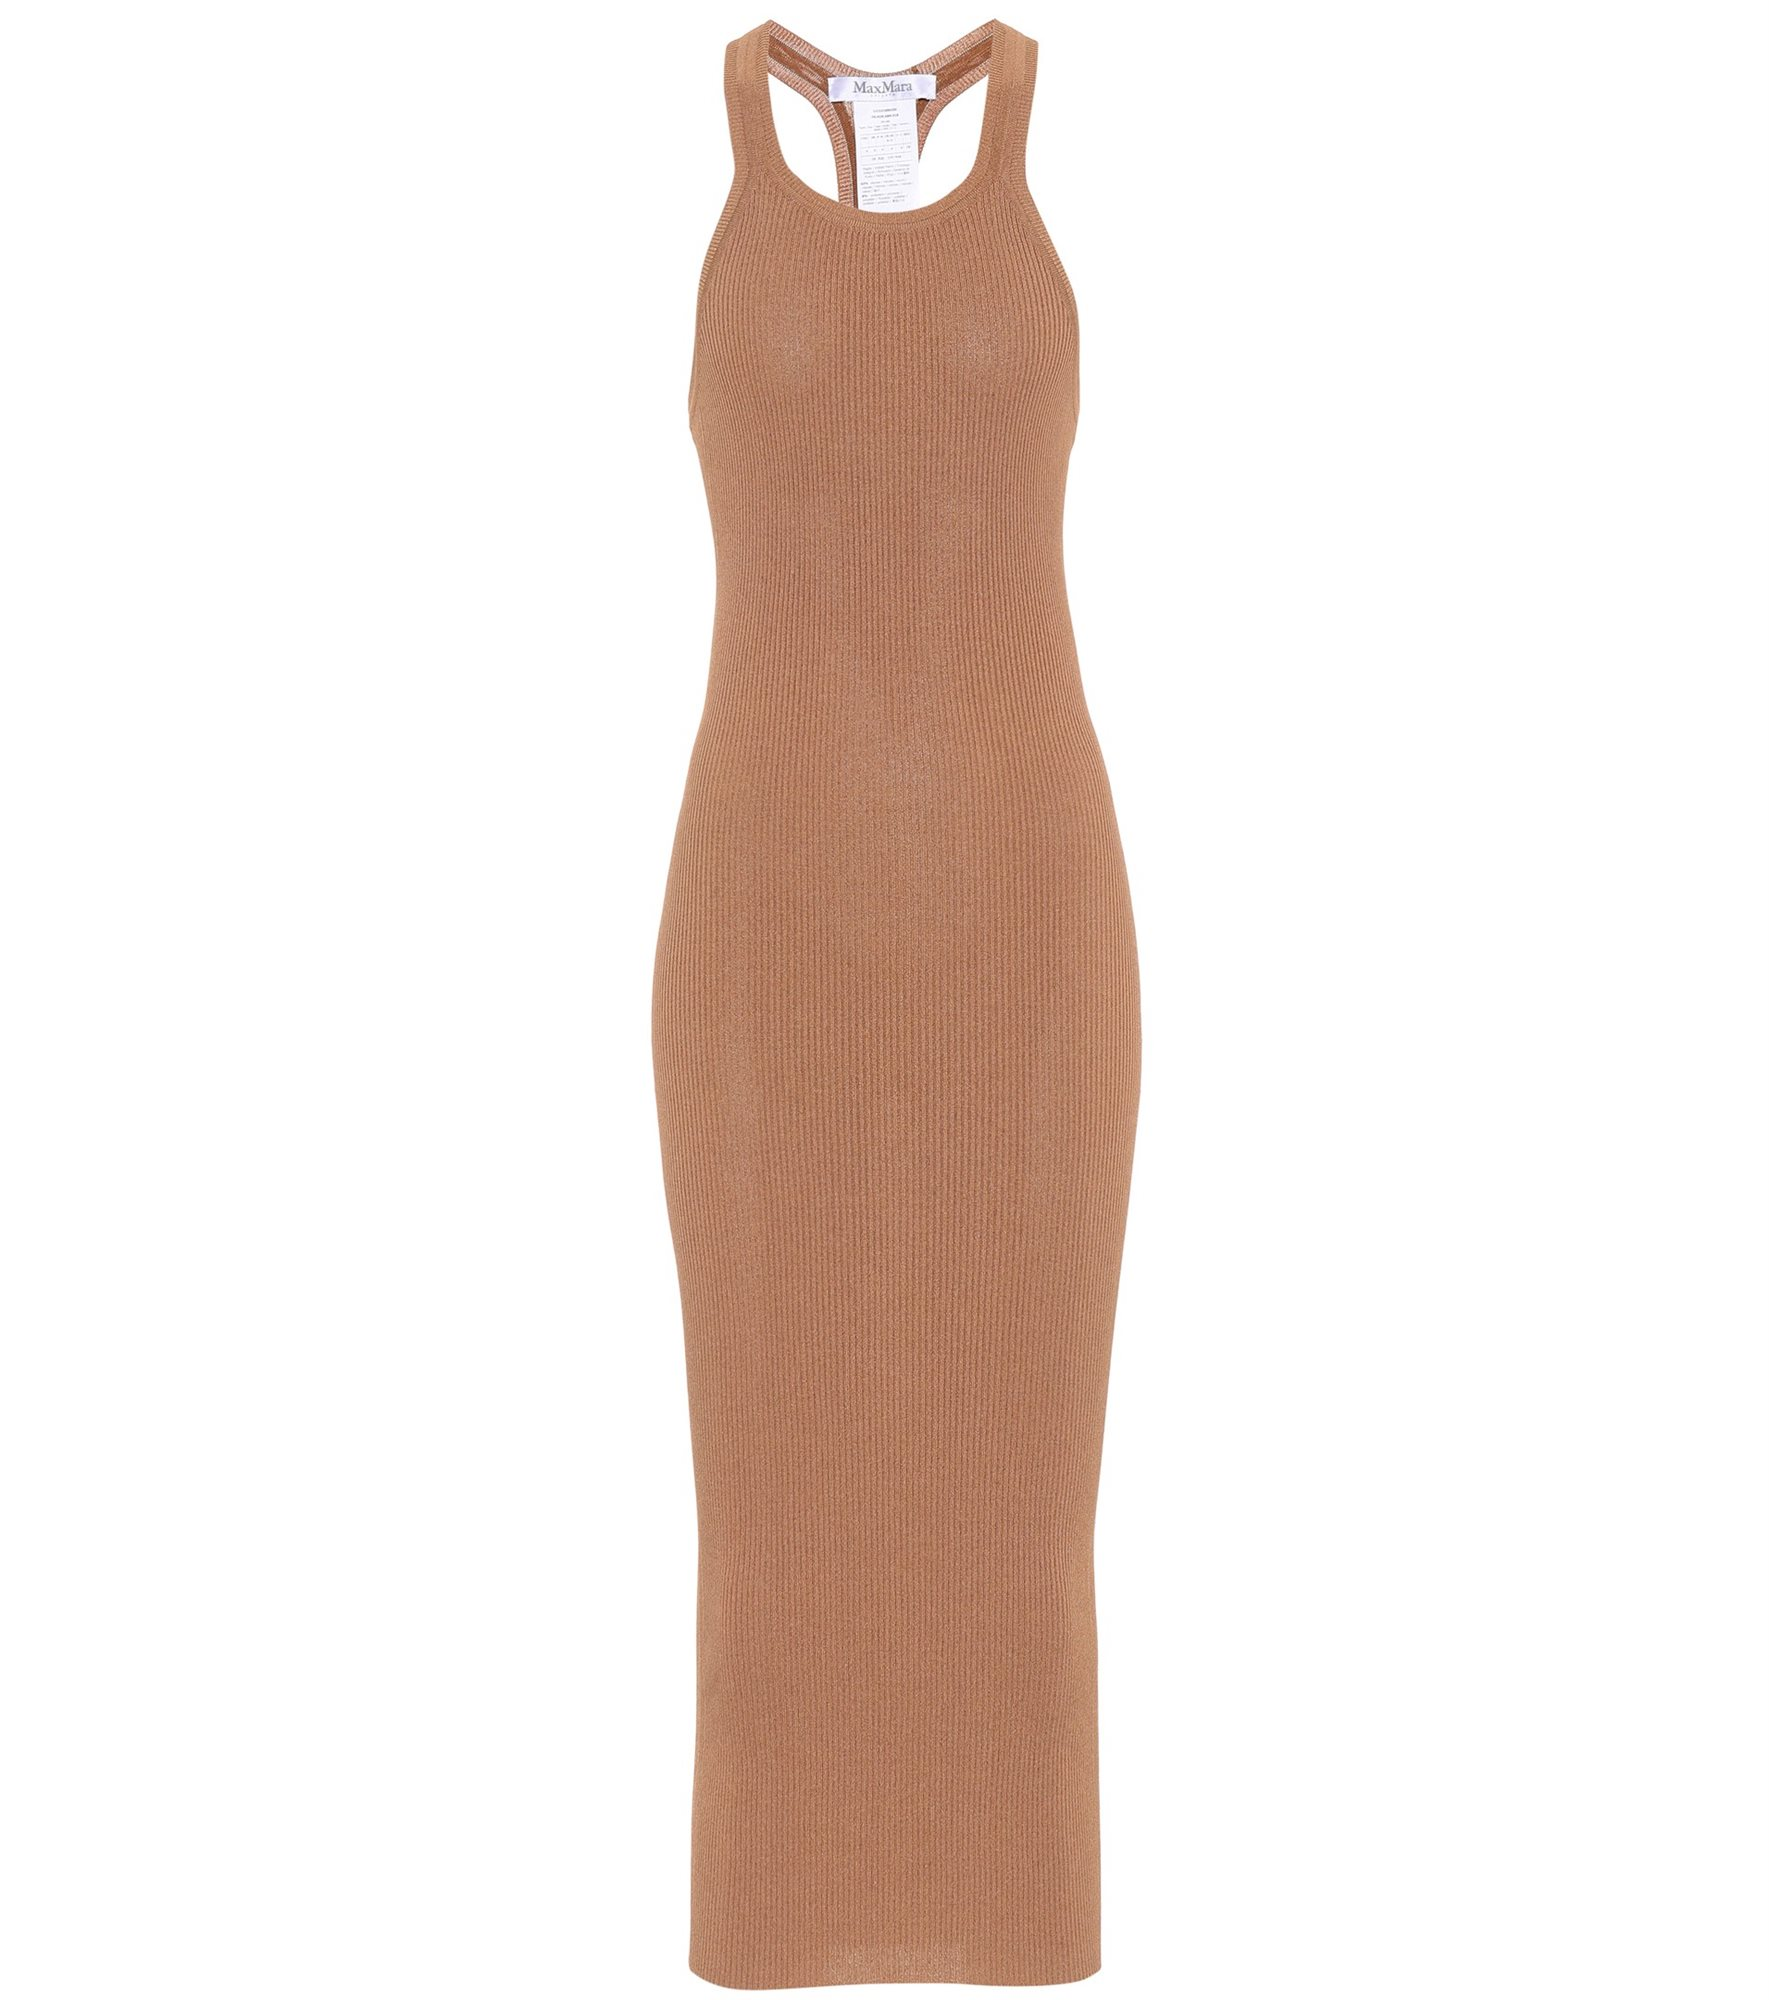 max-mara-vestido-bodycon-camel. Vestido 'bodycon' color camel